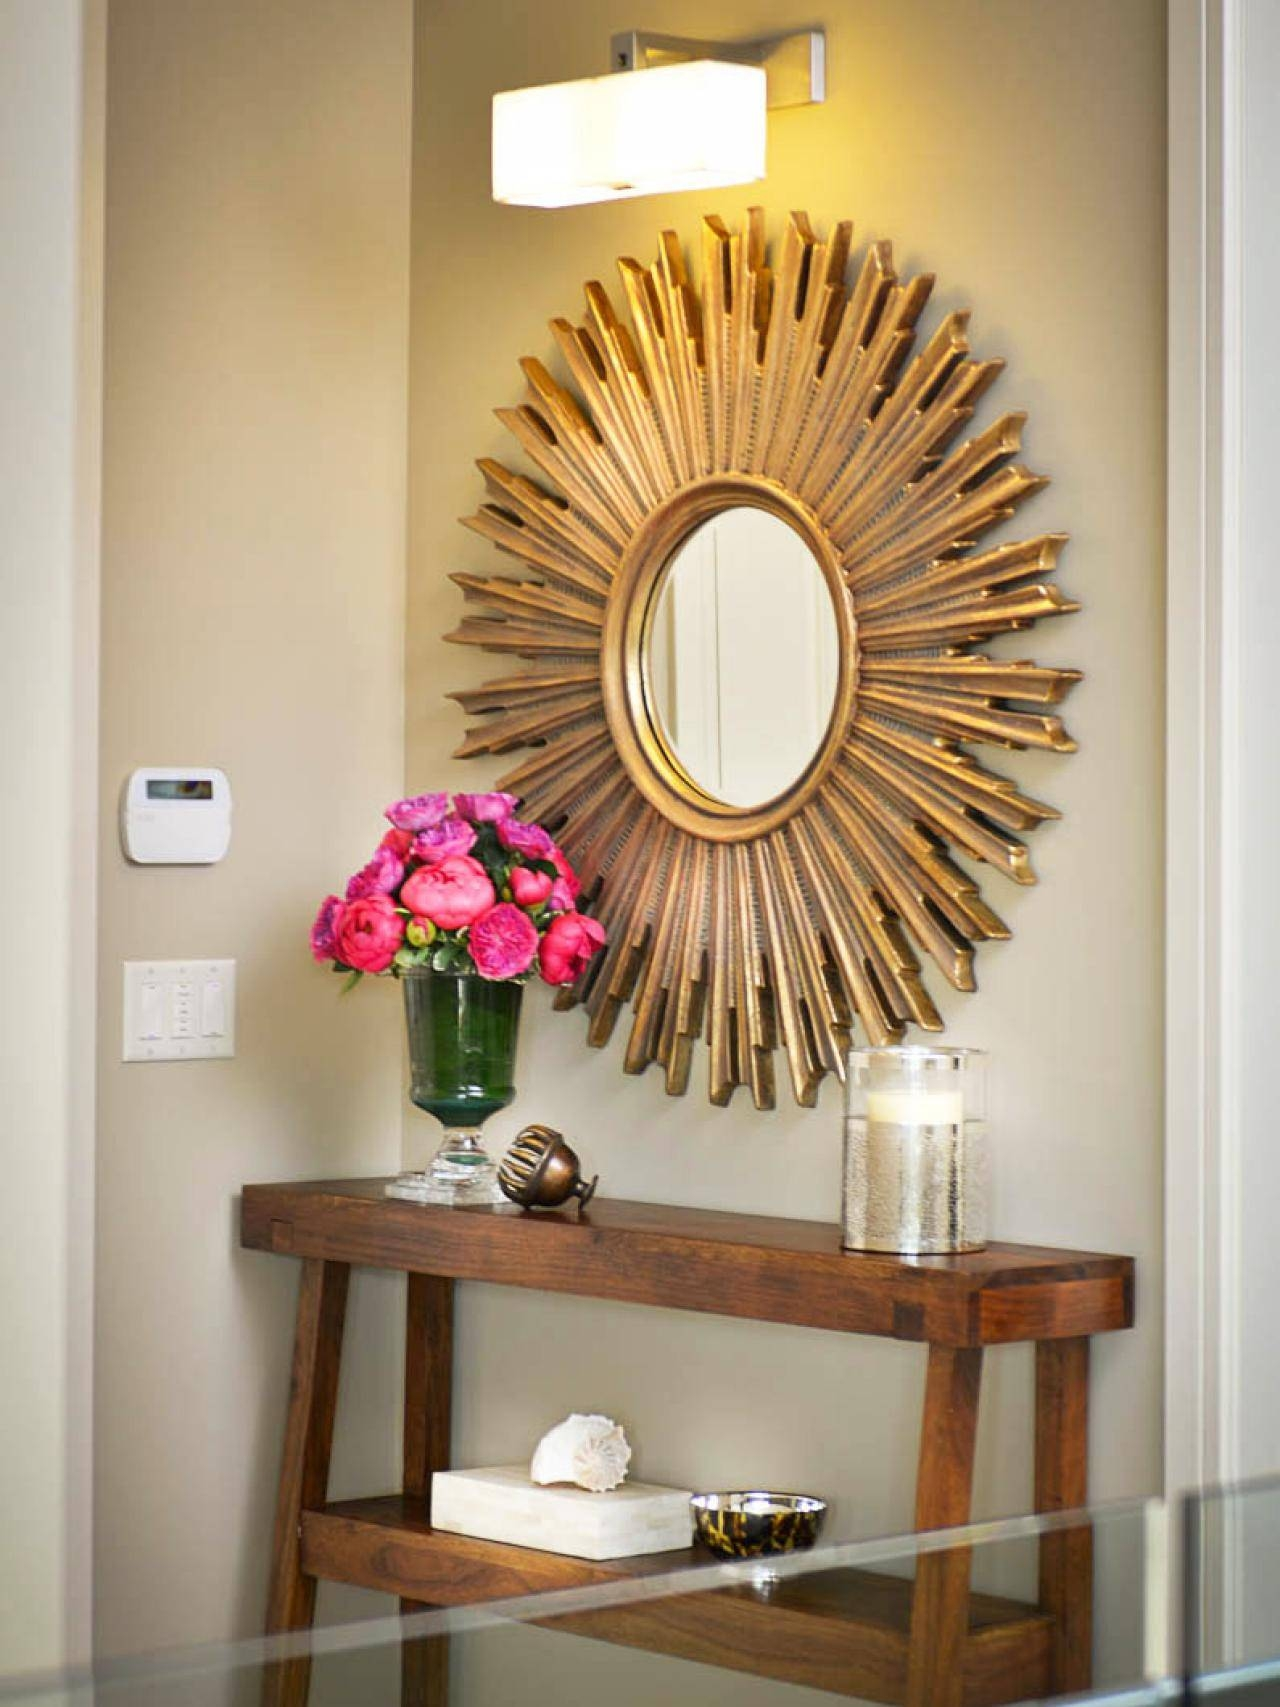 Decorating: Large Gold Sunburst Mirror For Wall Accessories Ideas in Extra Large Sunburst Mirrors (Image 7 of 25)